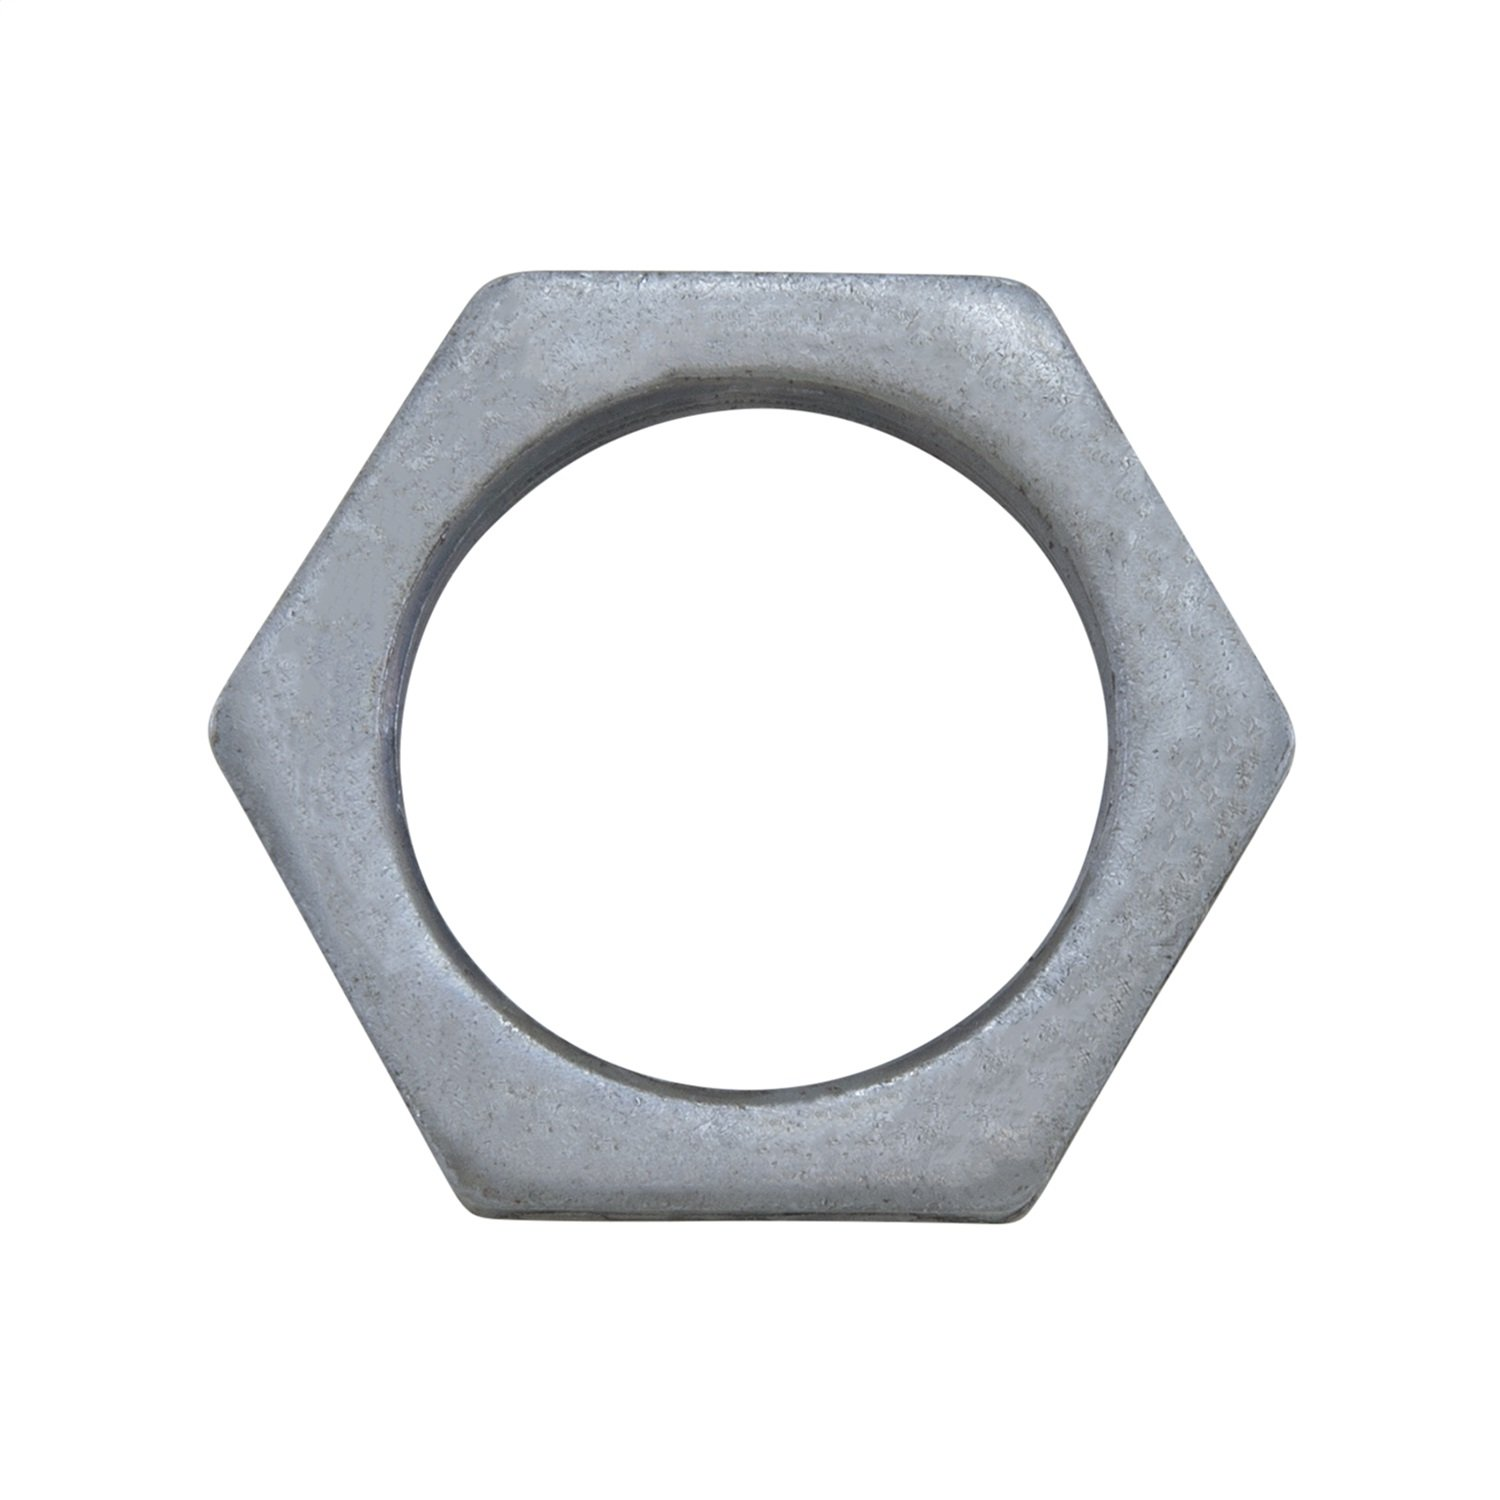 Yukon Gear /& Axle 6-Sided Spindle Nut for Dana 60 Differential 1.750 I.D YSPSP-003